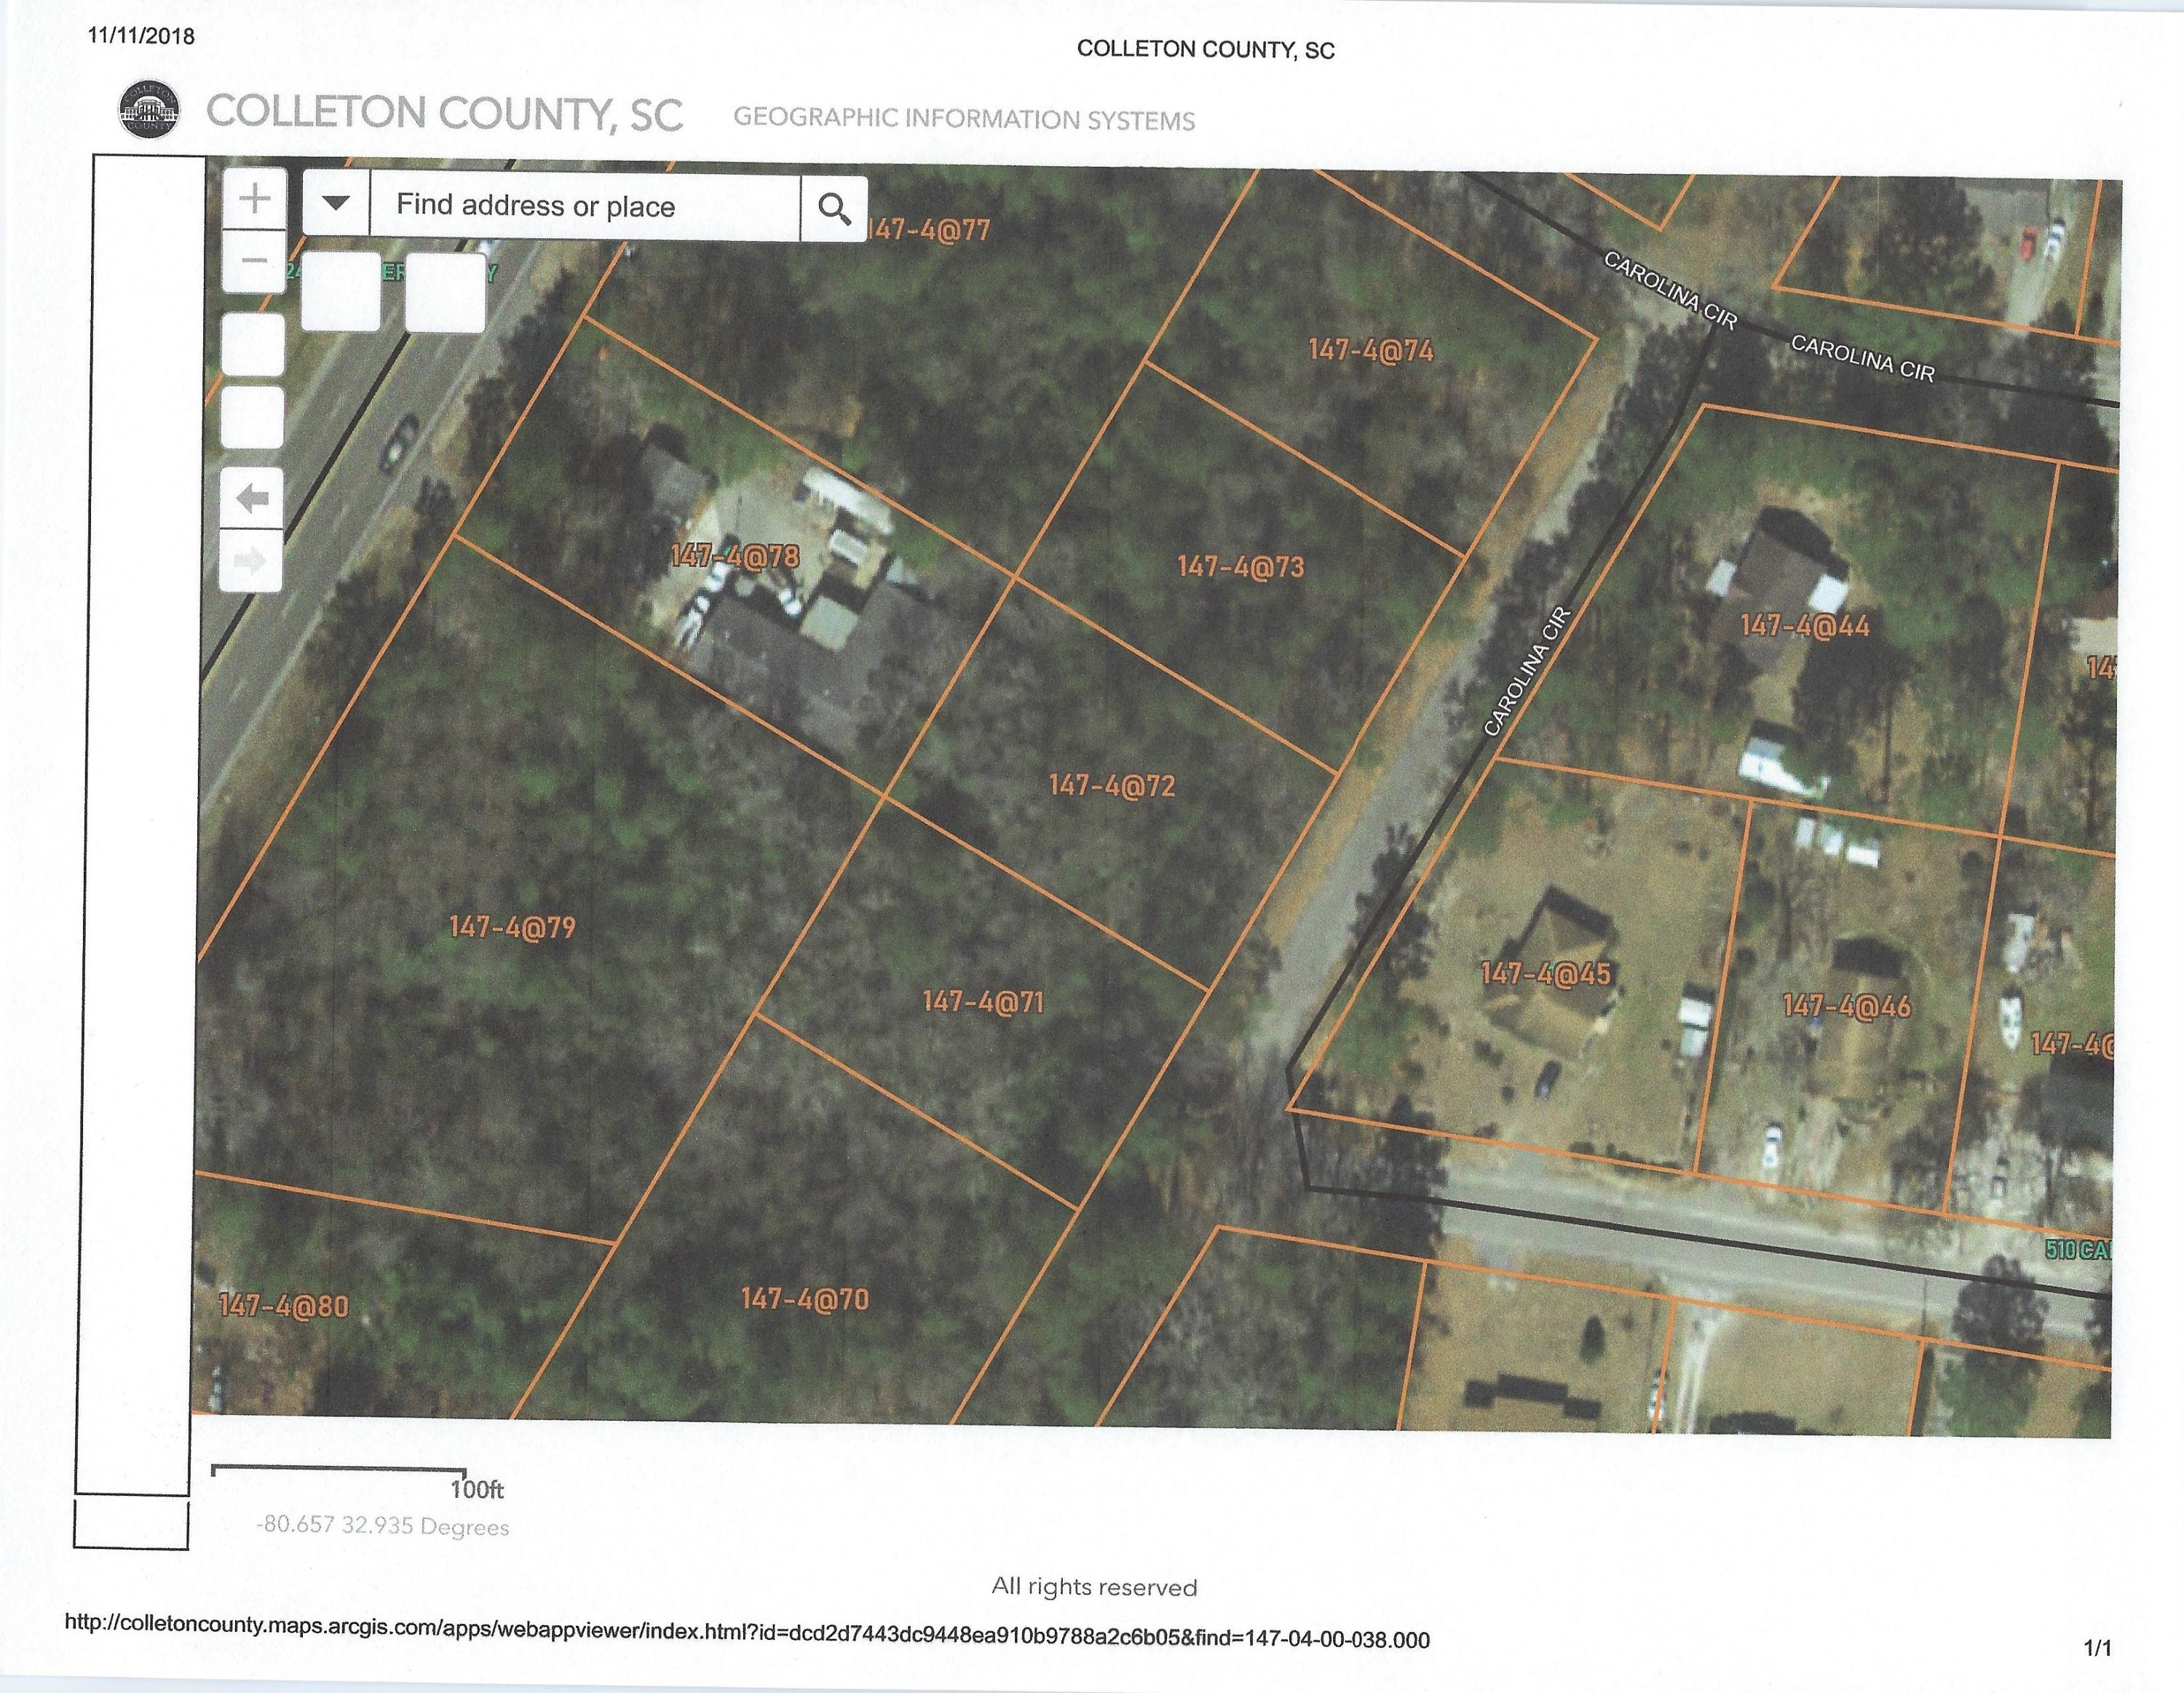 Carolina Circle UNIT Lot 3 Walterboro, SC 29488